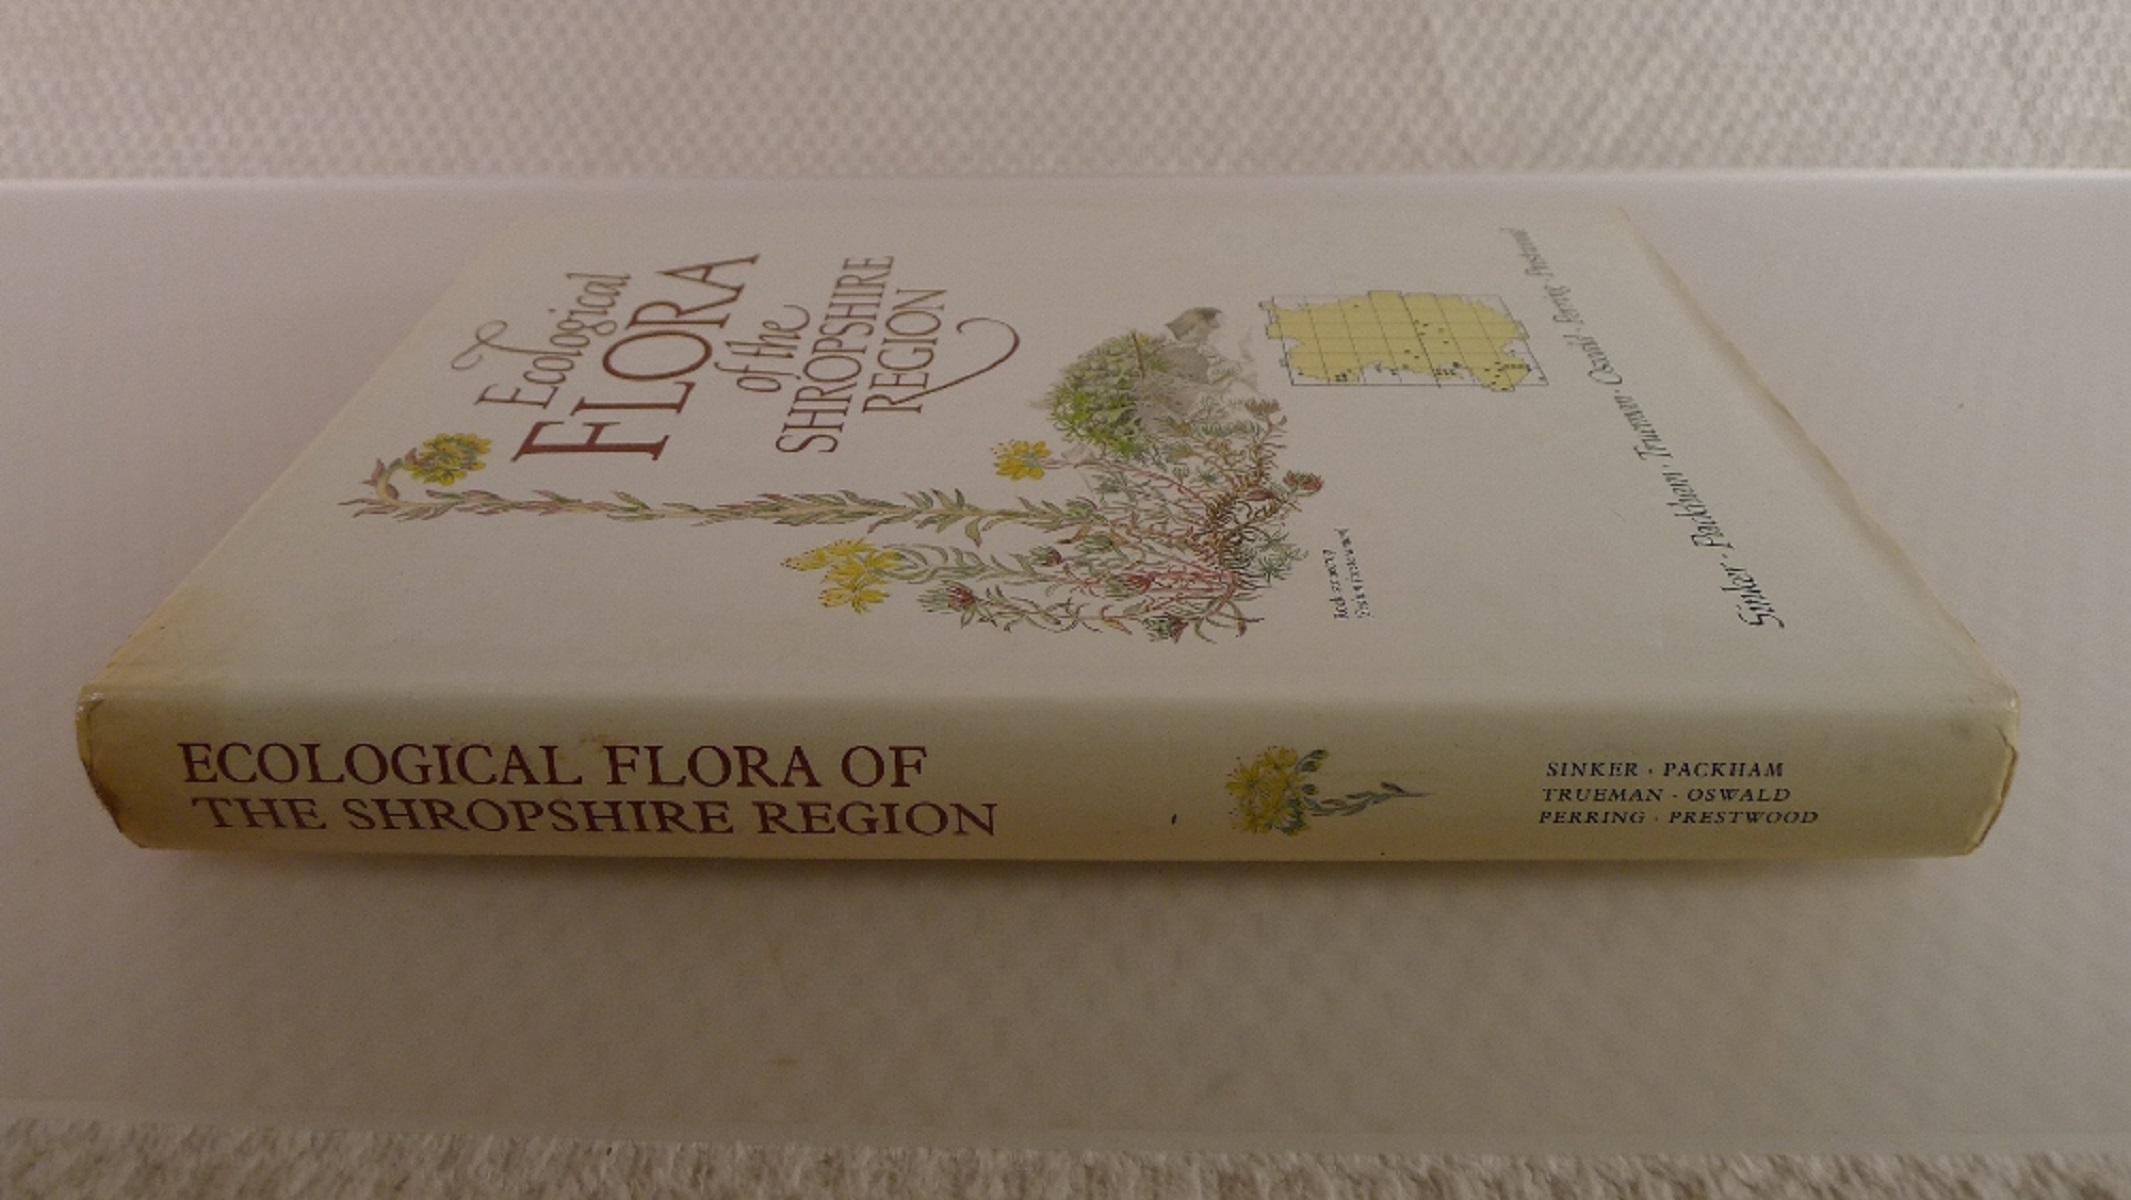 Ecological Flora of the Shropshire region by Sinker, Packham, Trueman, Oswald, Perring and Prestwood - Image 2 of 5